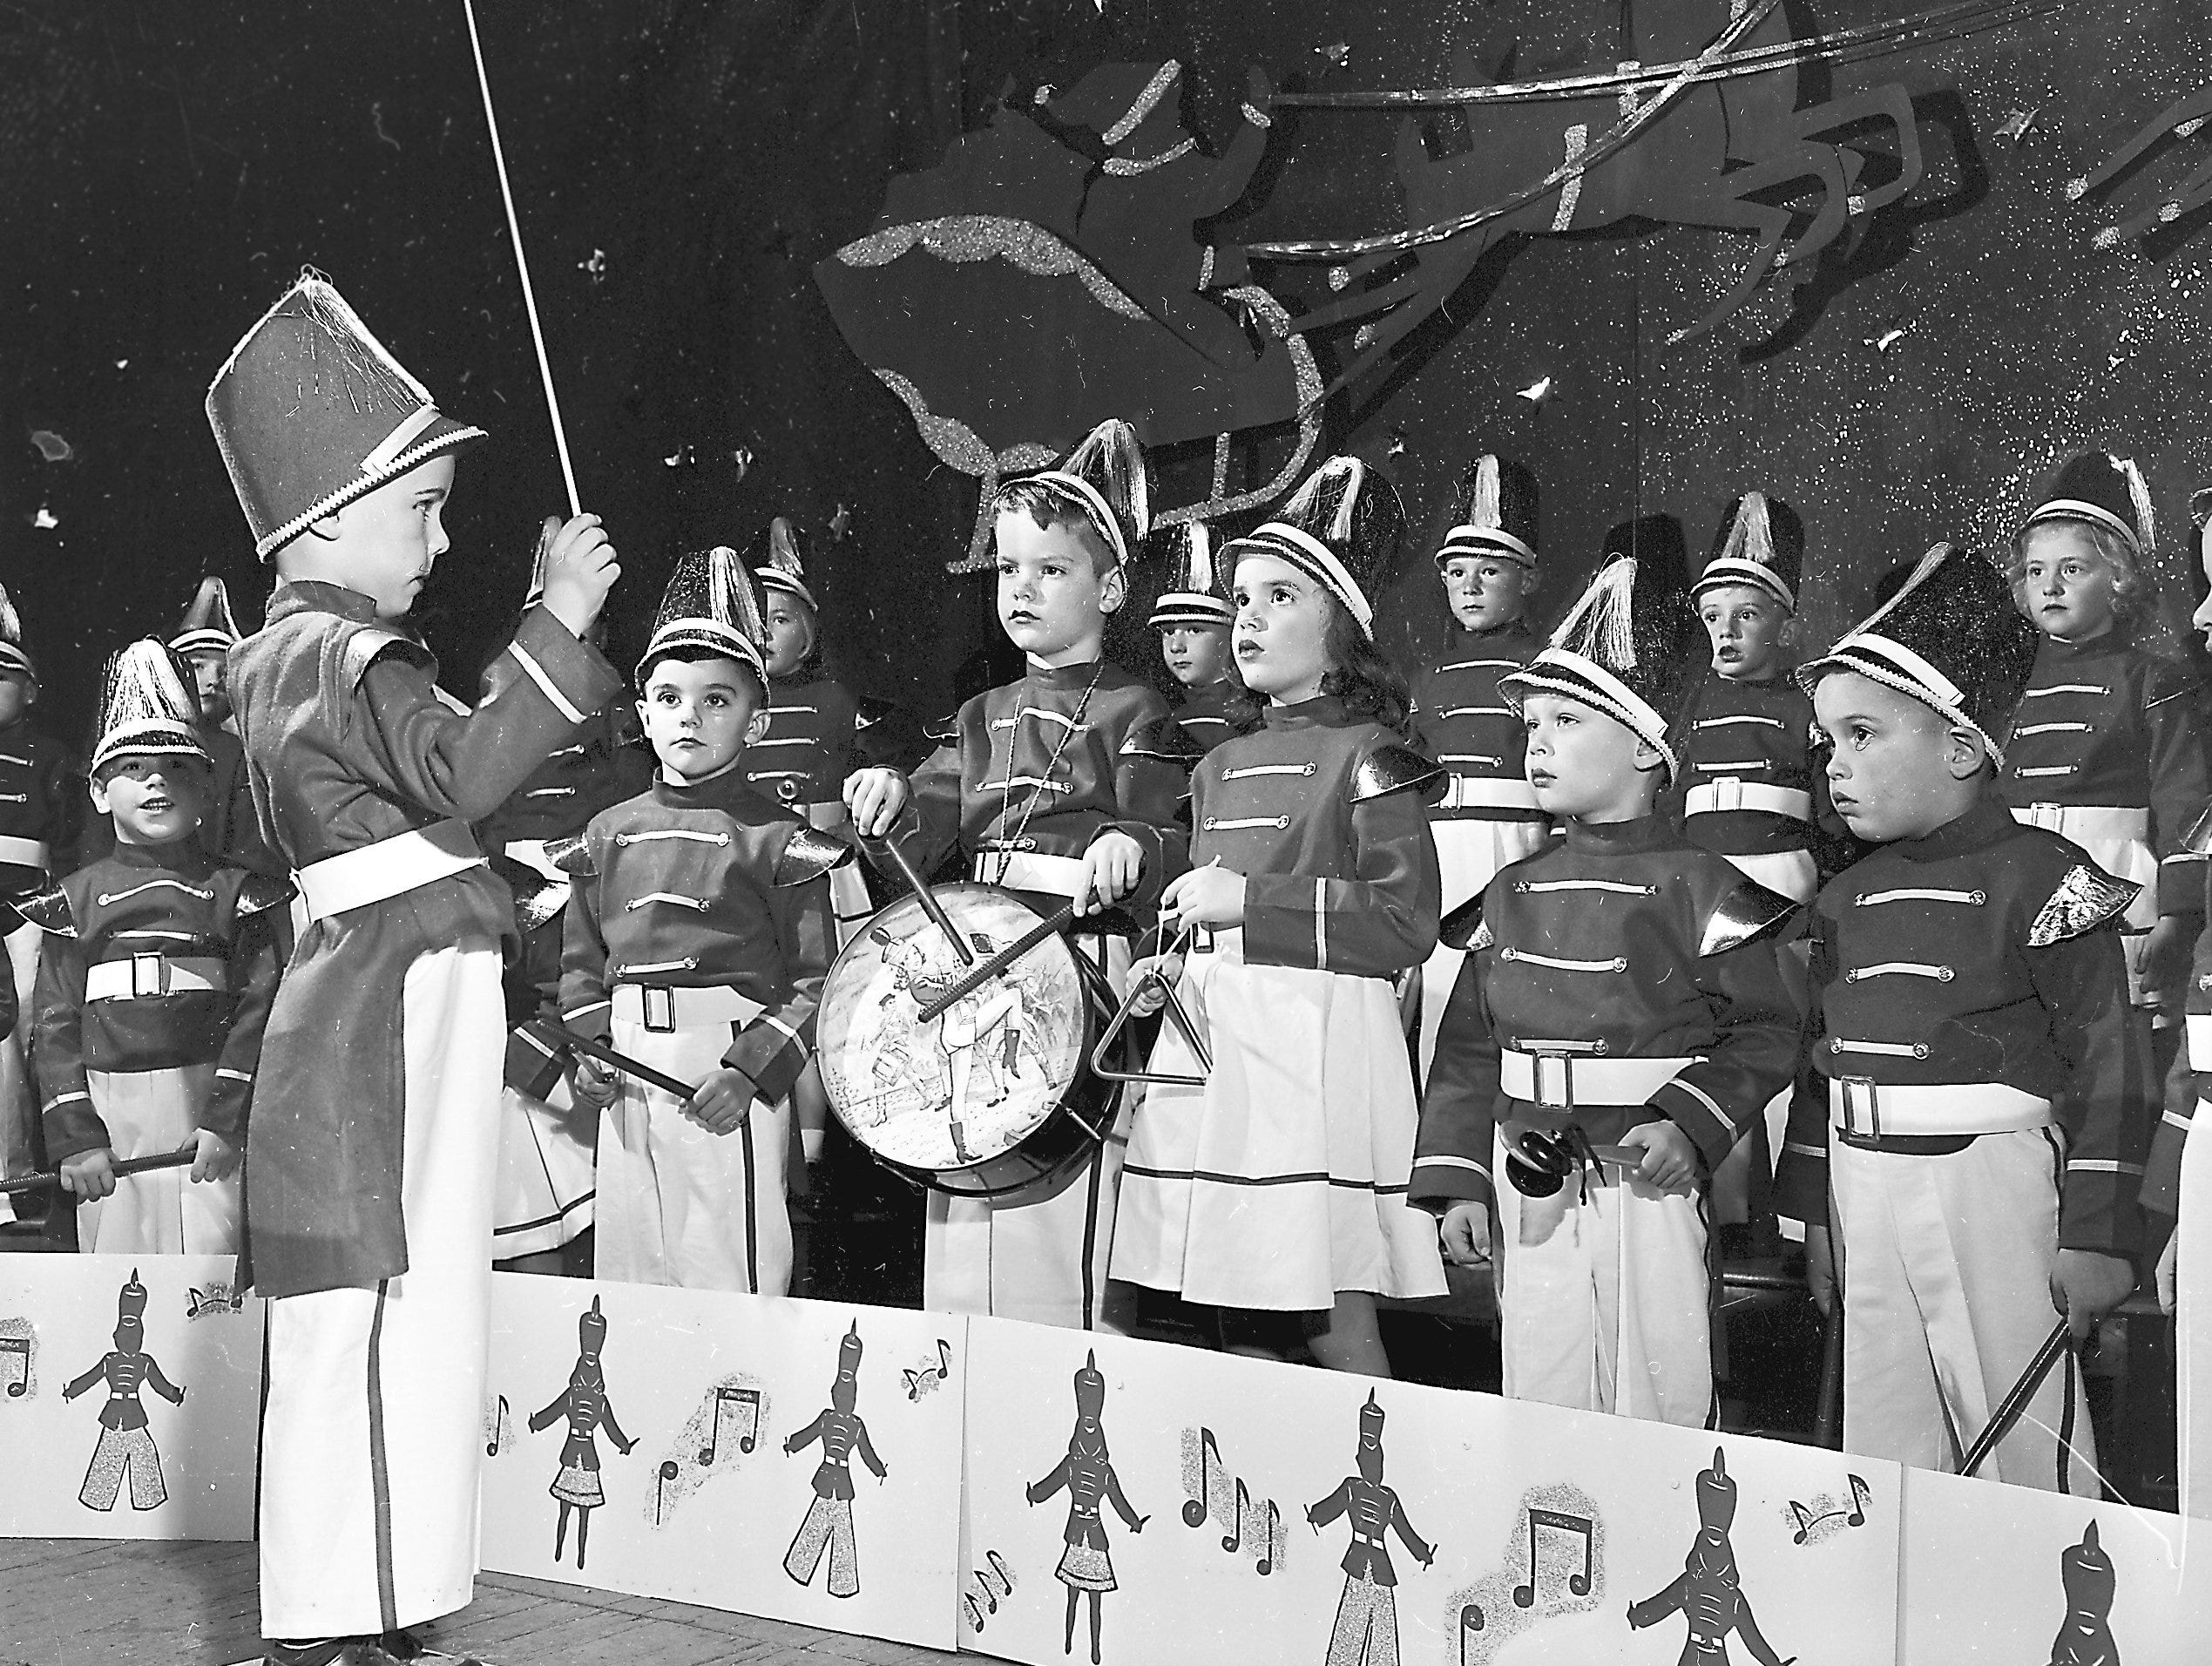 Young musicians of Holy Child Kindergarten, under the baton of Pat Mooney, greeted the Yule season with a series of lively tunes on 21 Dec 1953 during a program of song and pageantry at the Little Theatre in Memphis Museum.